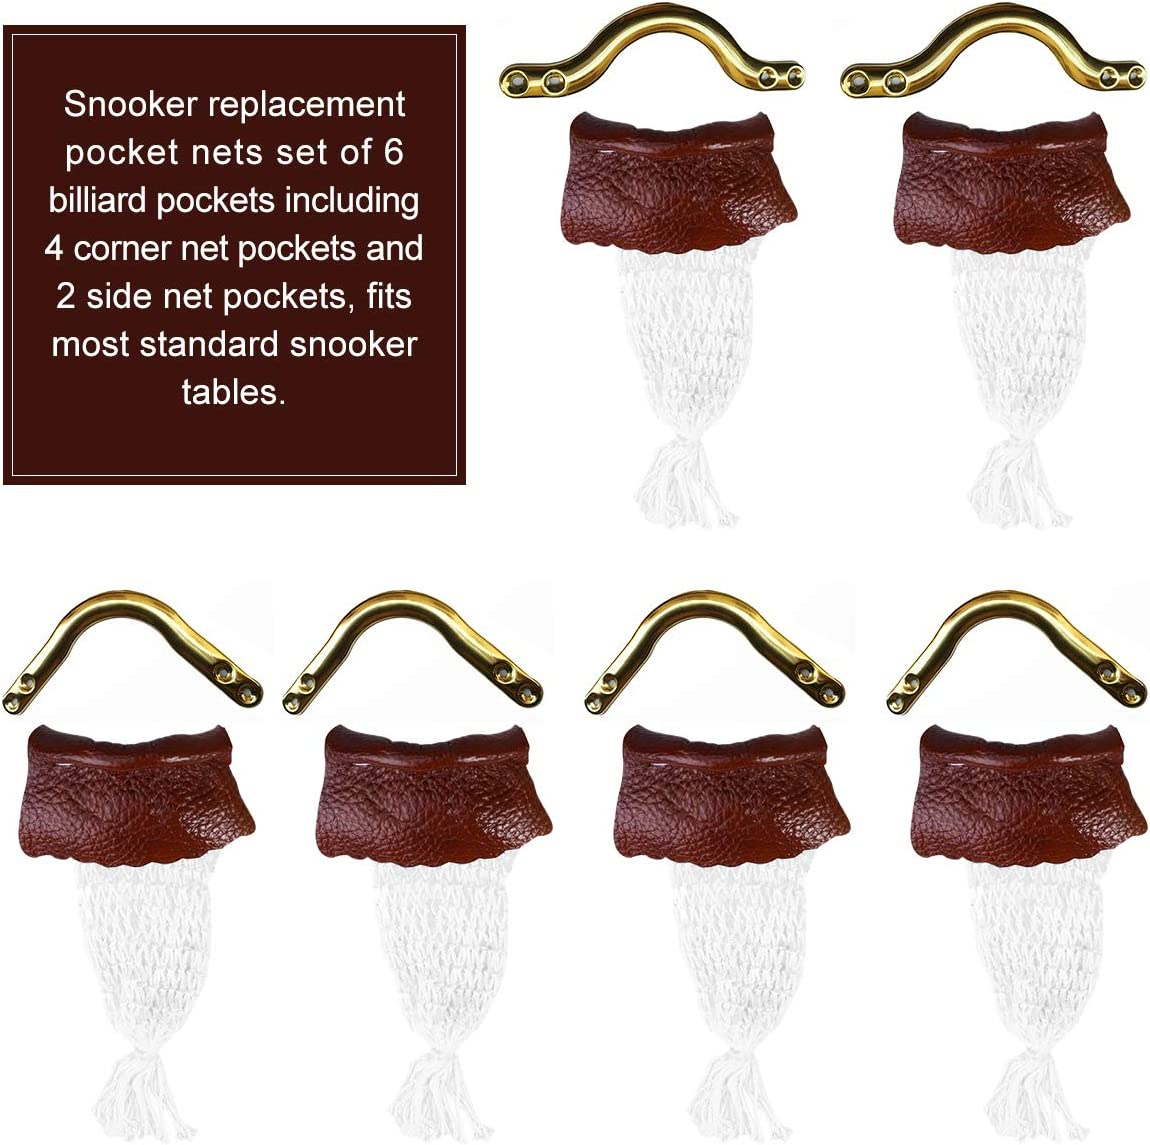 6Pc Leather Snooker Table Net Pockets Billiard Pocket Net Replacement Ball Bags